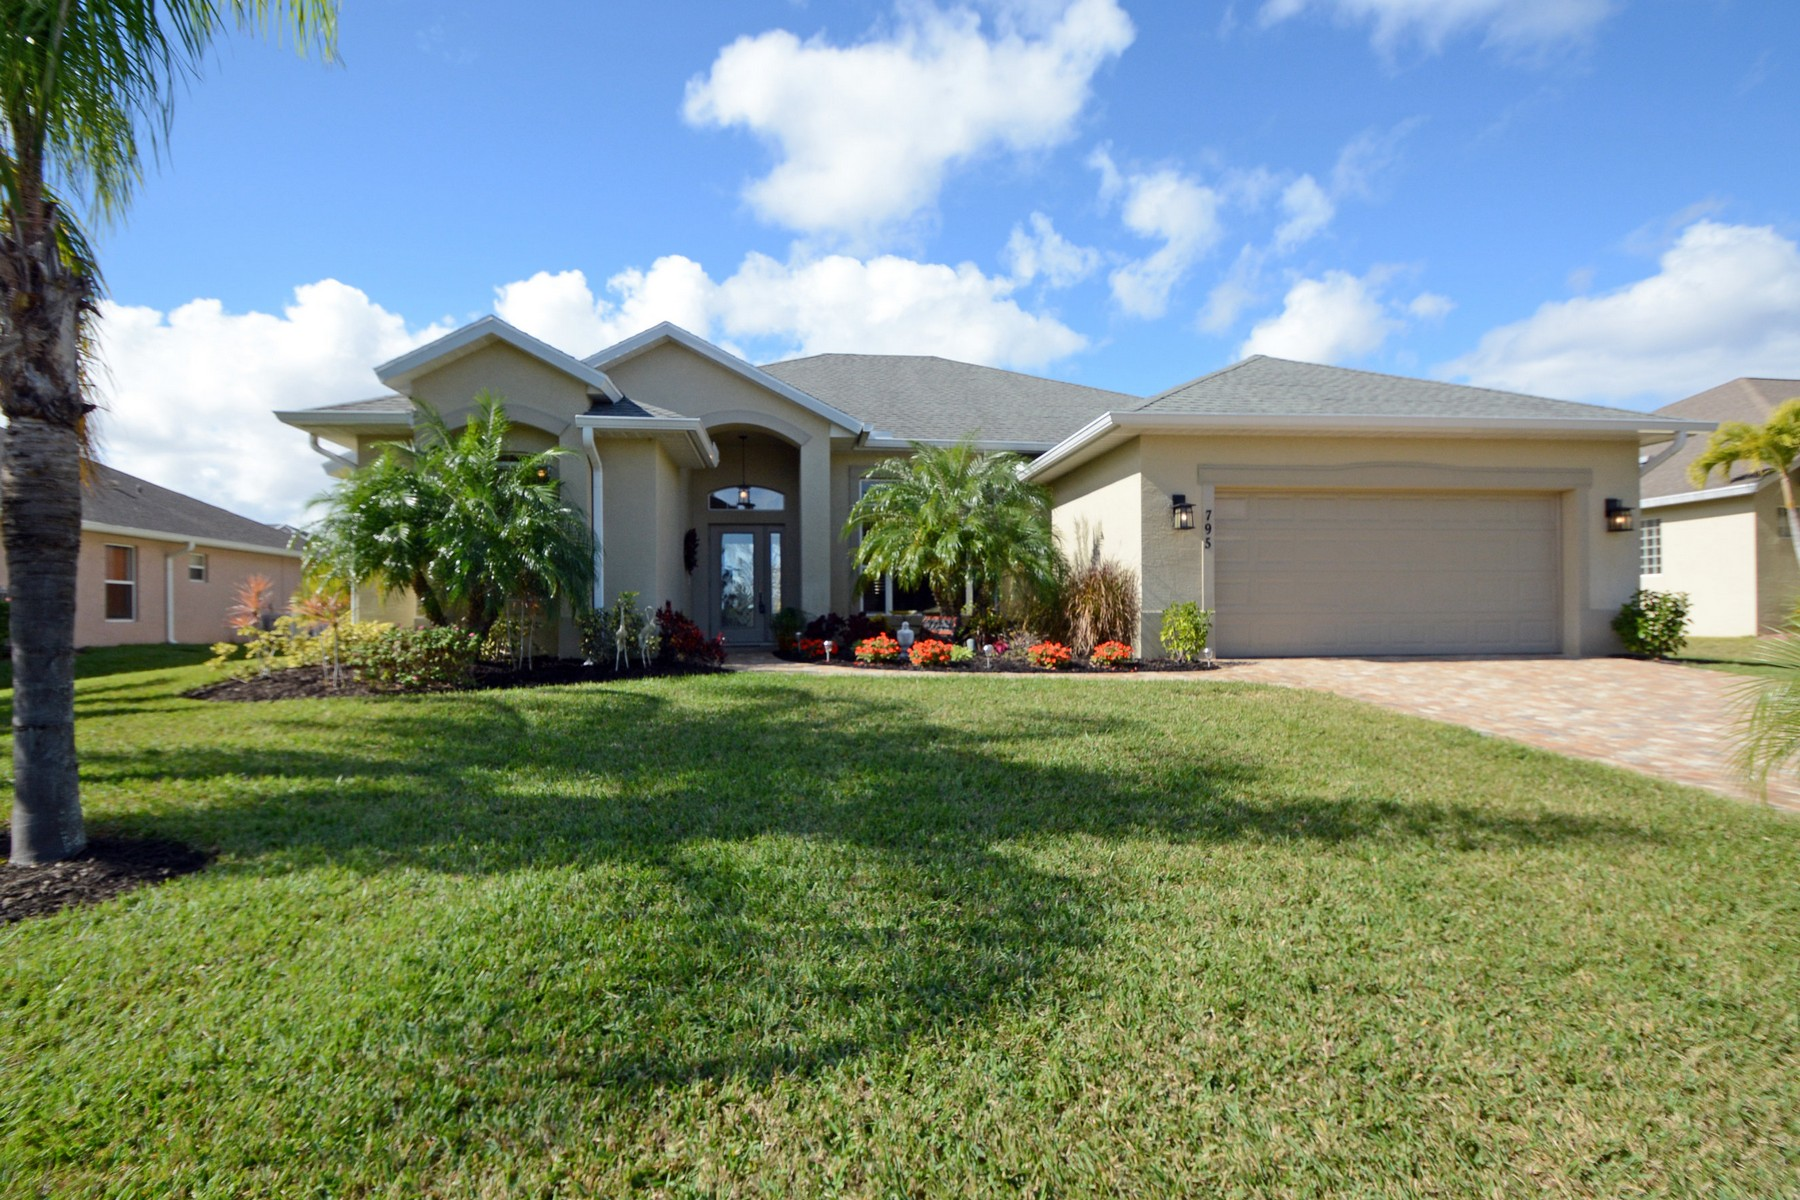 Single Family Home for Sale at Practically Perfect, Like New Pool Home 795 Sarina Terrace SW Vero Beach, Florida, 32968 United States